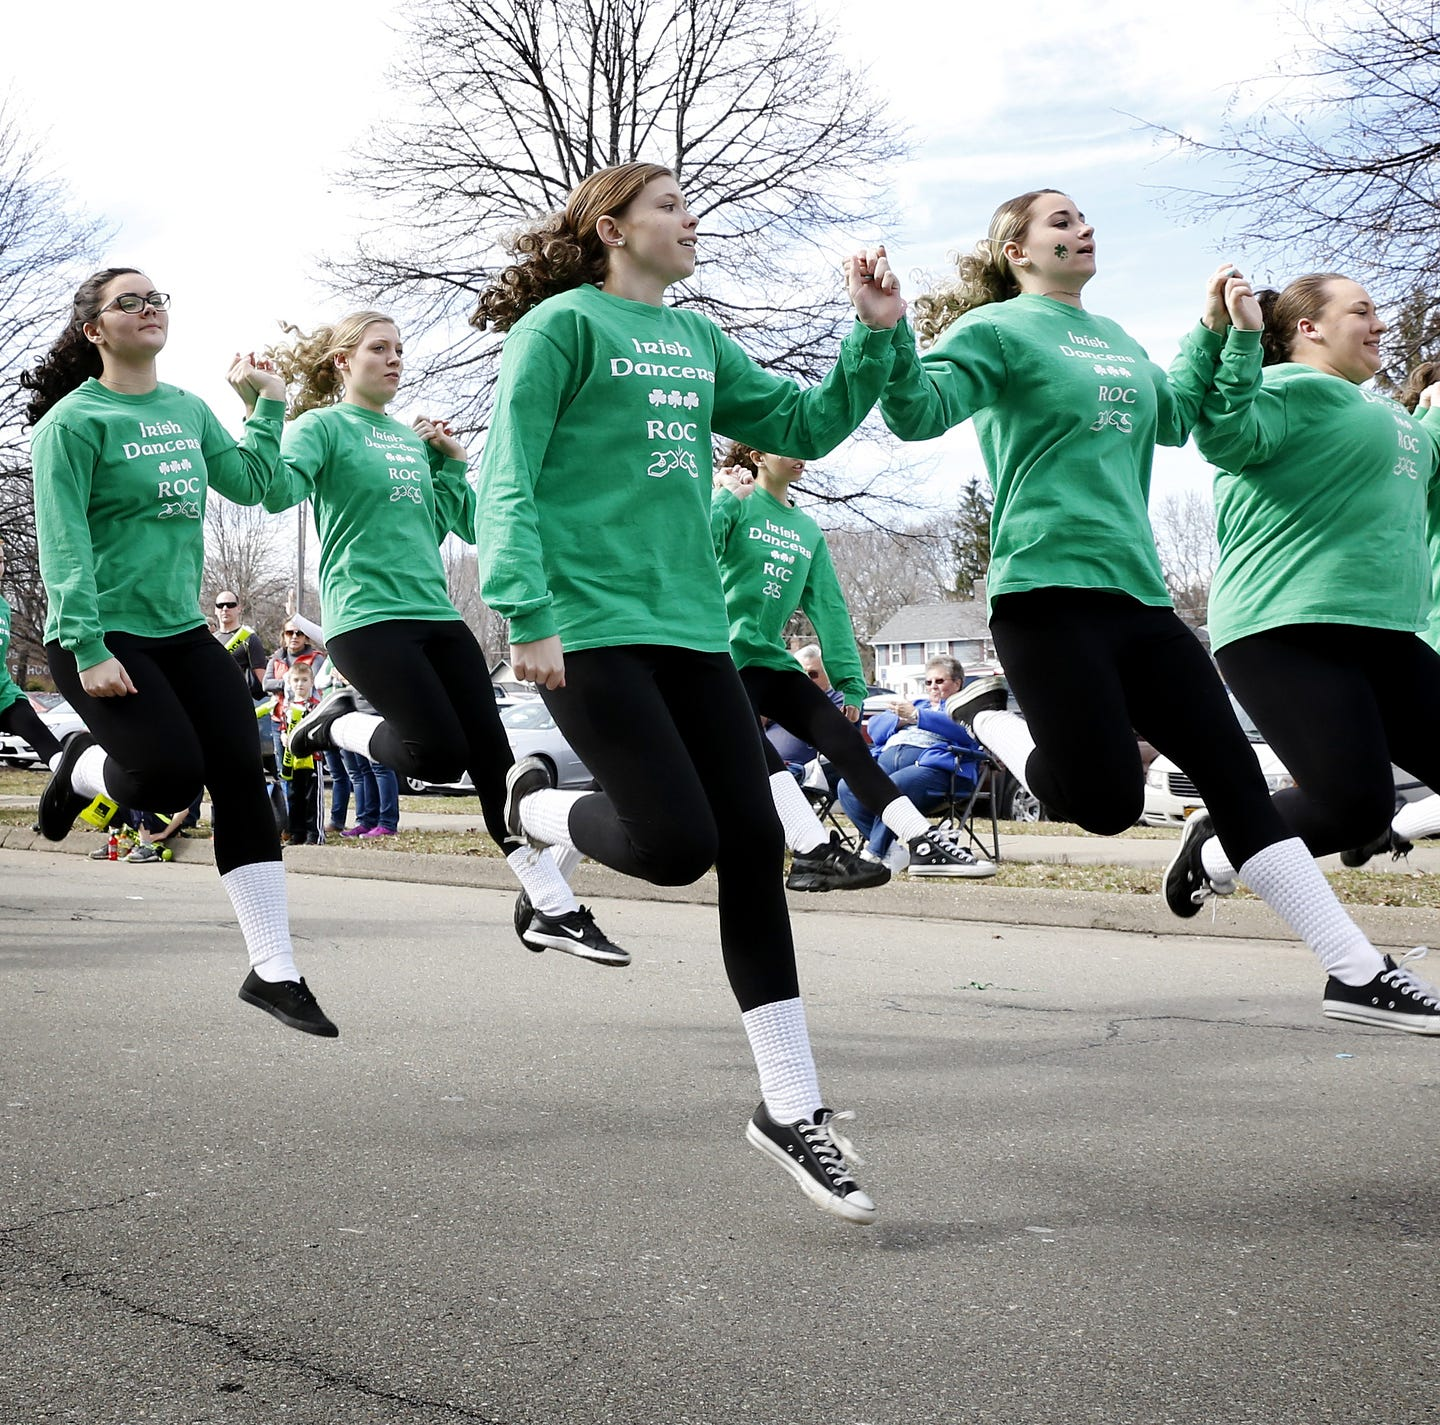 Here's this year's schedule for the Horseheads St. Patrick's Day Parade